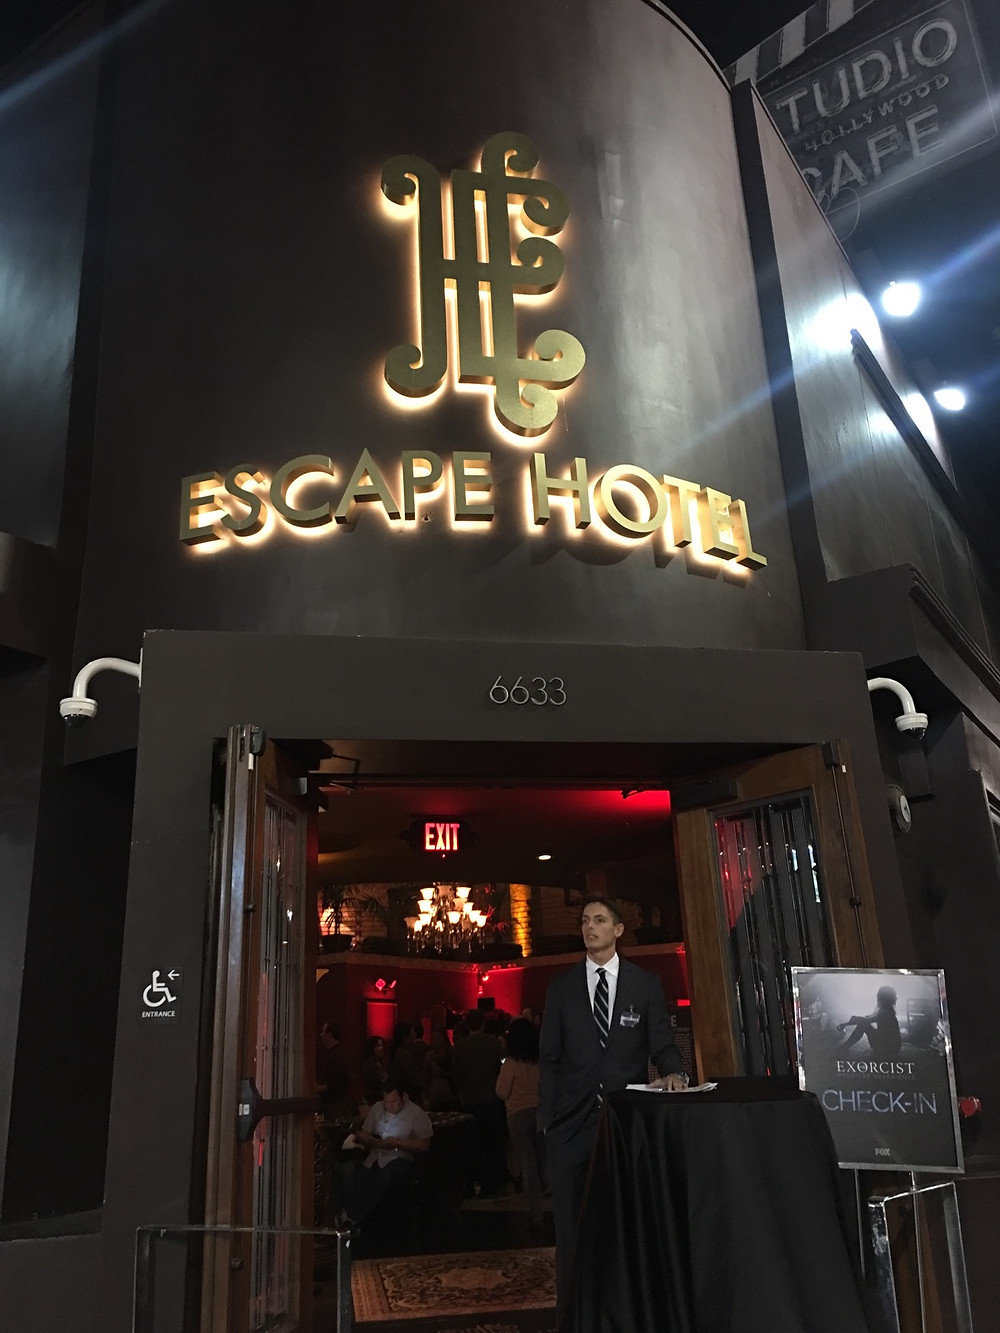 Outside of the Escape Hotel (pictured by Keith McCalebb)